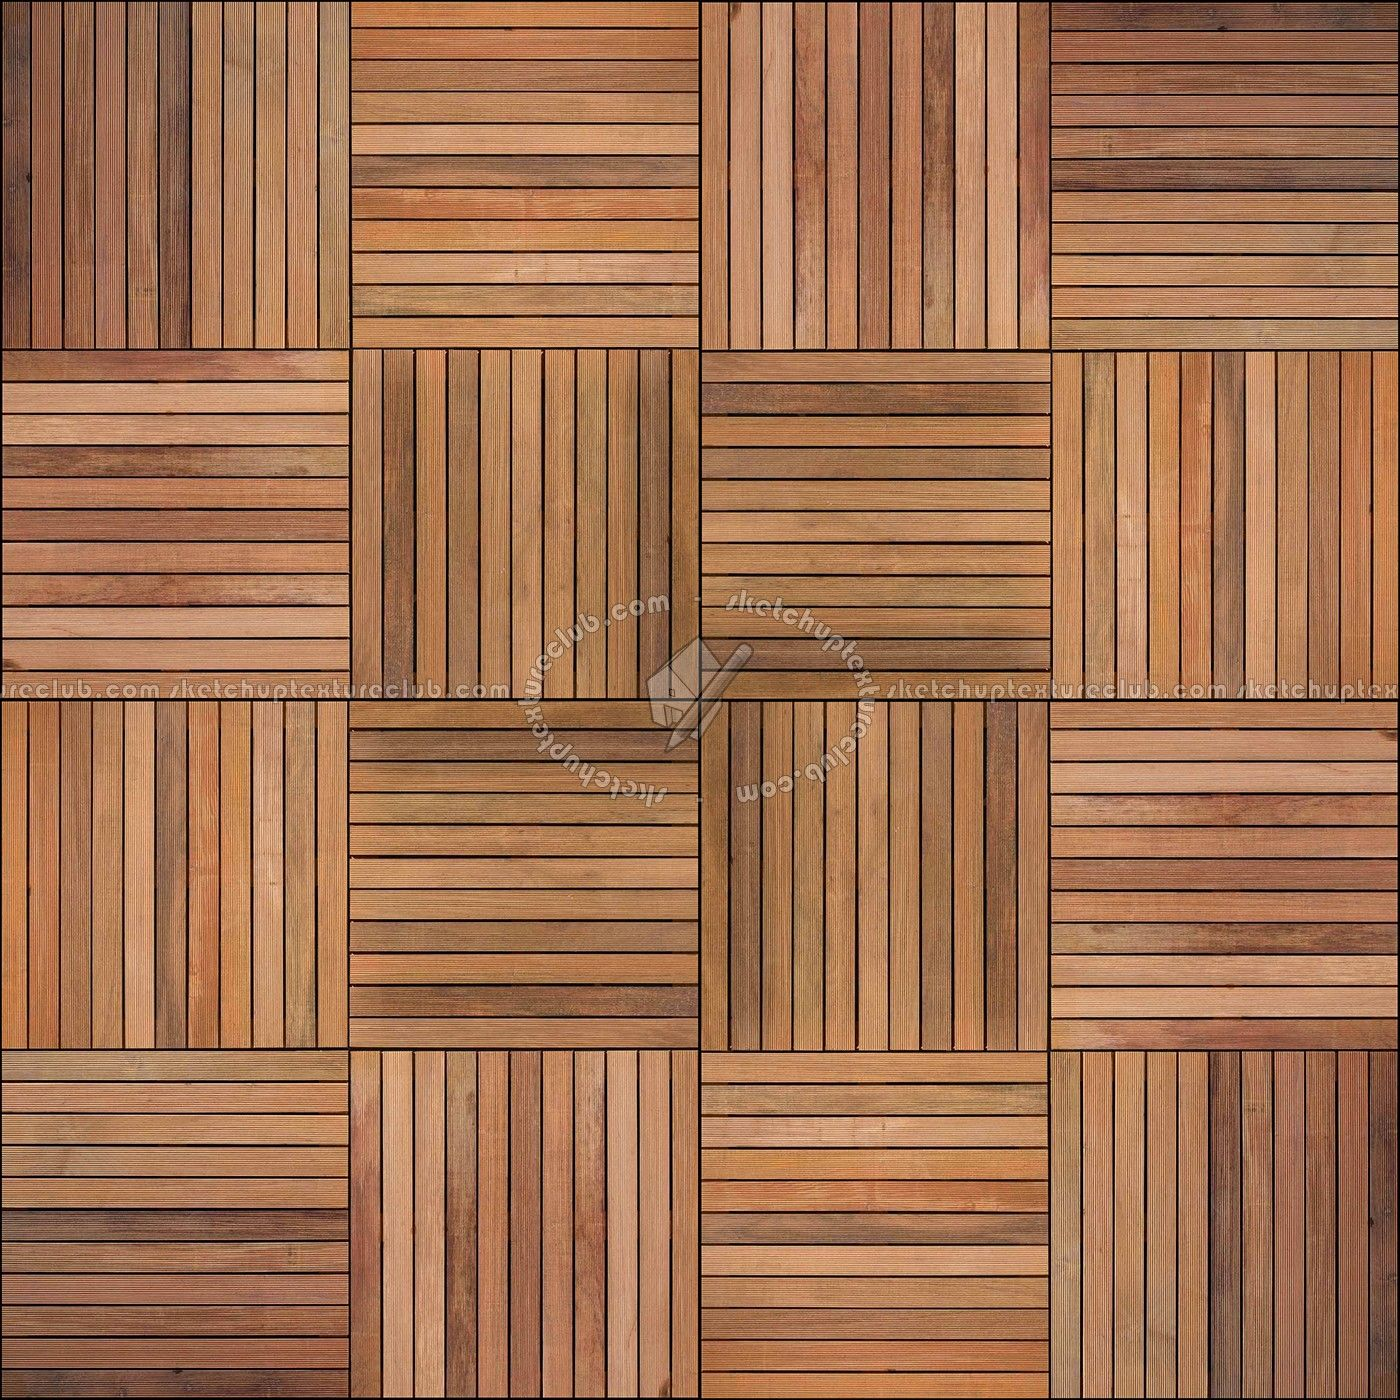 Wood Decking Texture Seamless 09235 Celimg Wood Floor